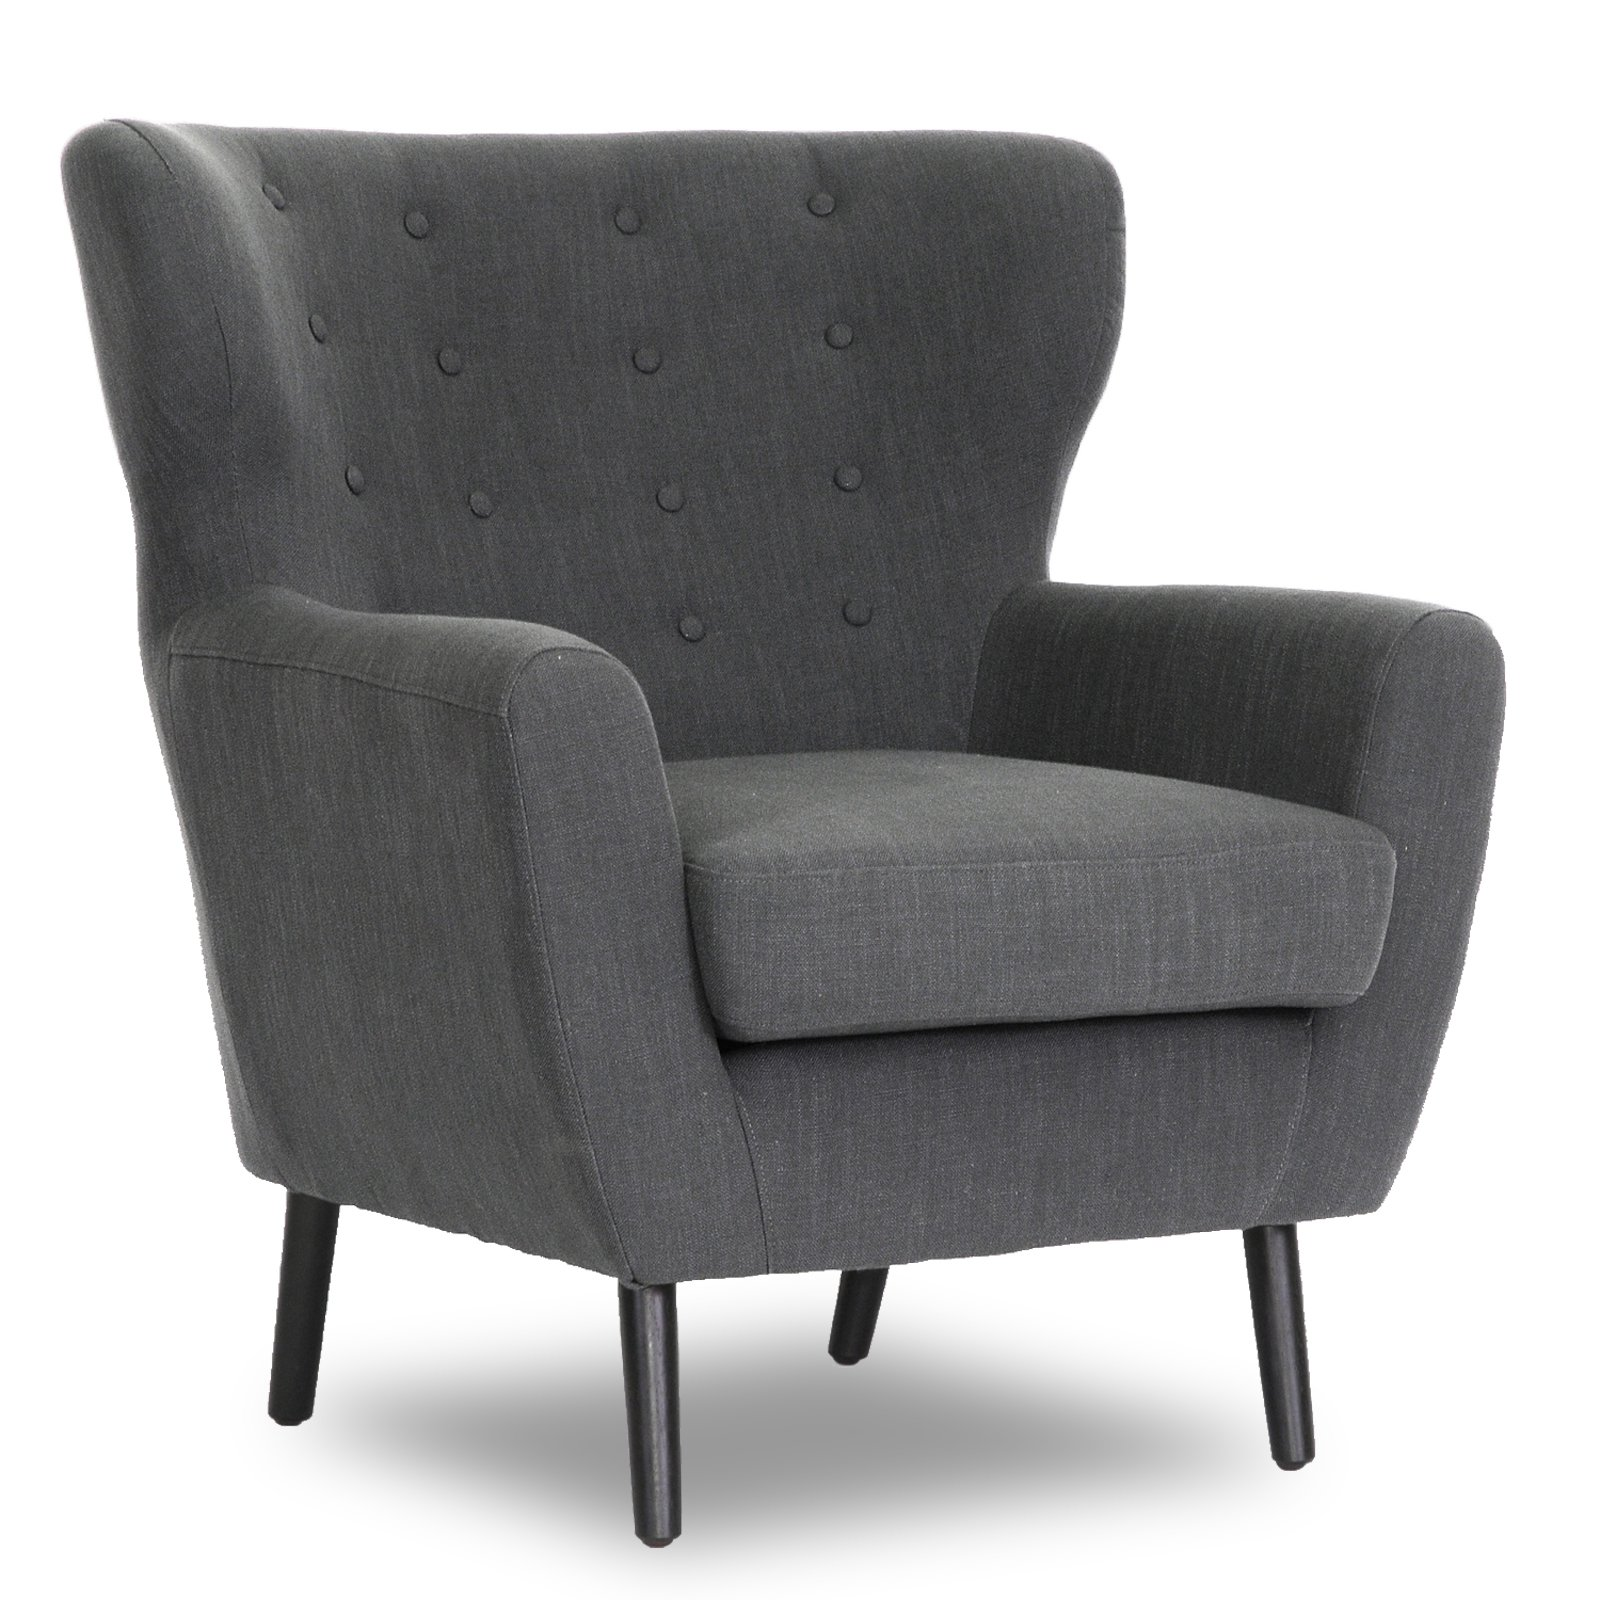 Baxton Studio Lombardi Linen Modern Club Chair - Dark Gray